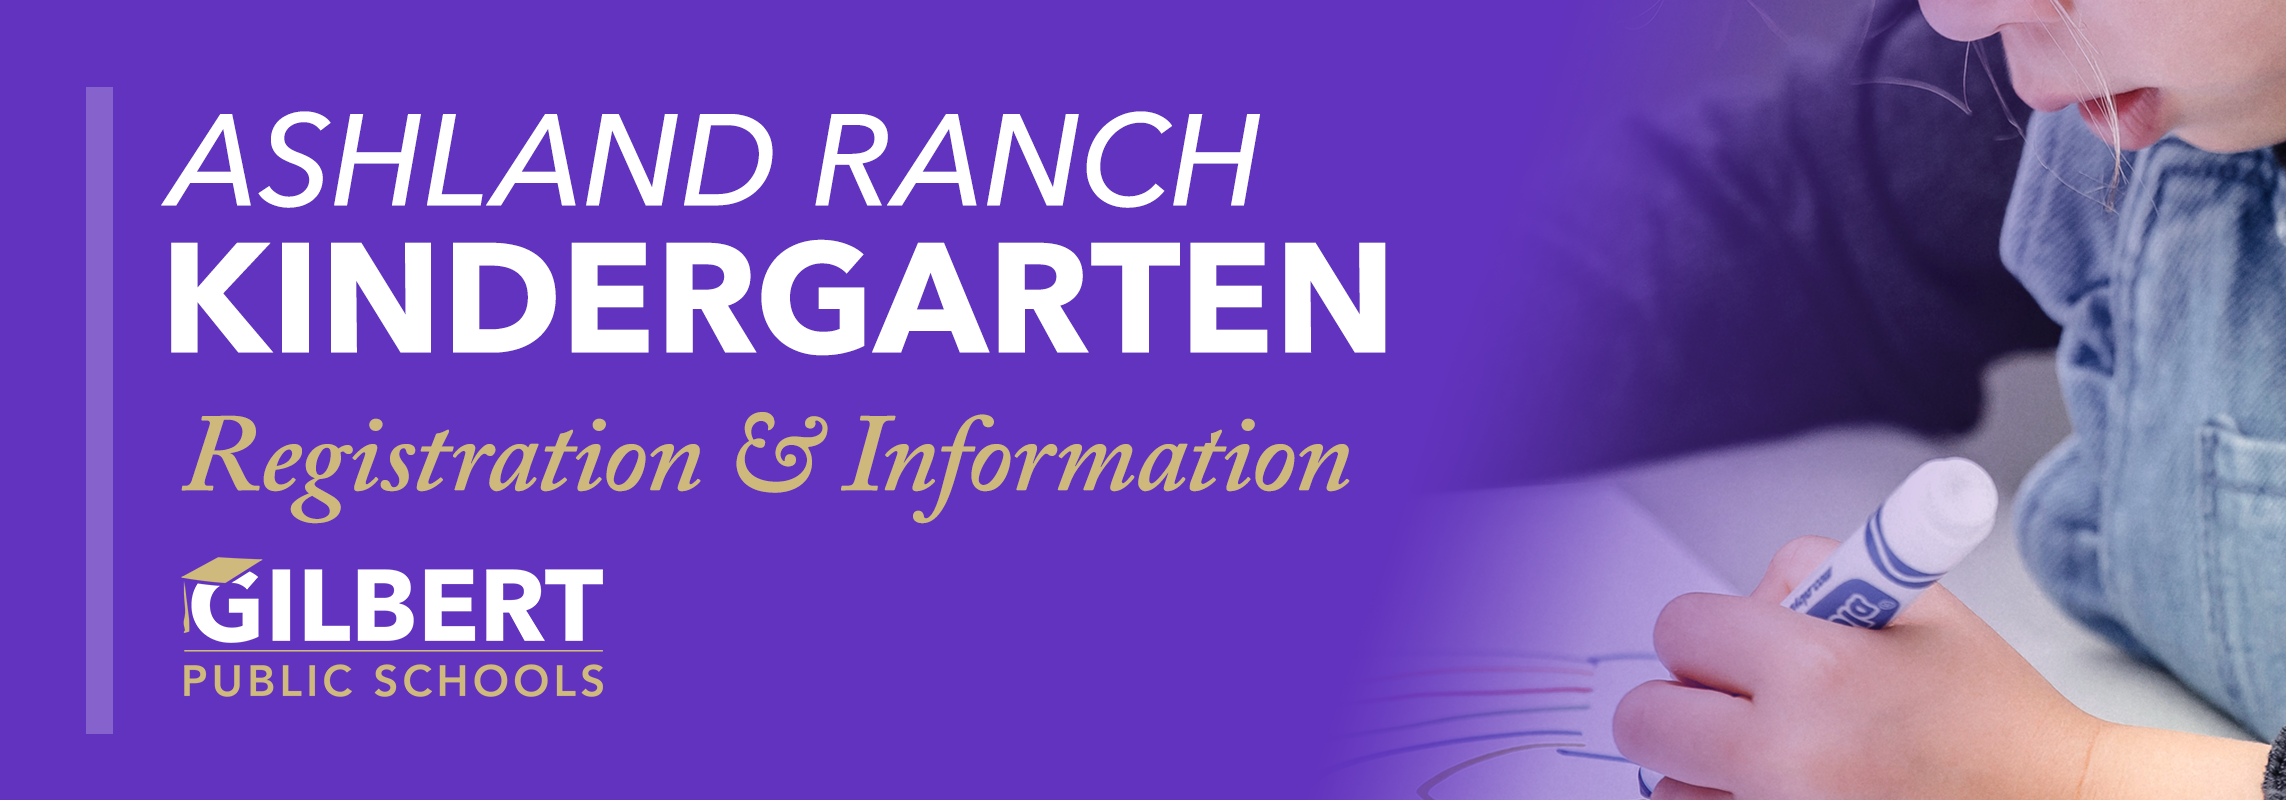 Ashland Ranch Kindergarten Registration